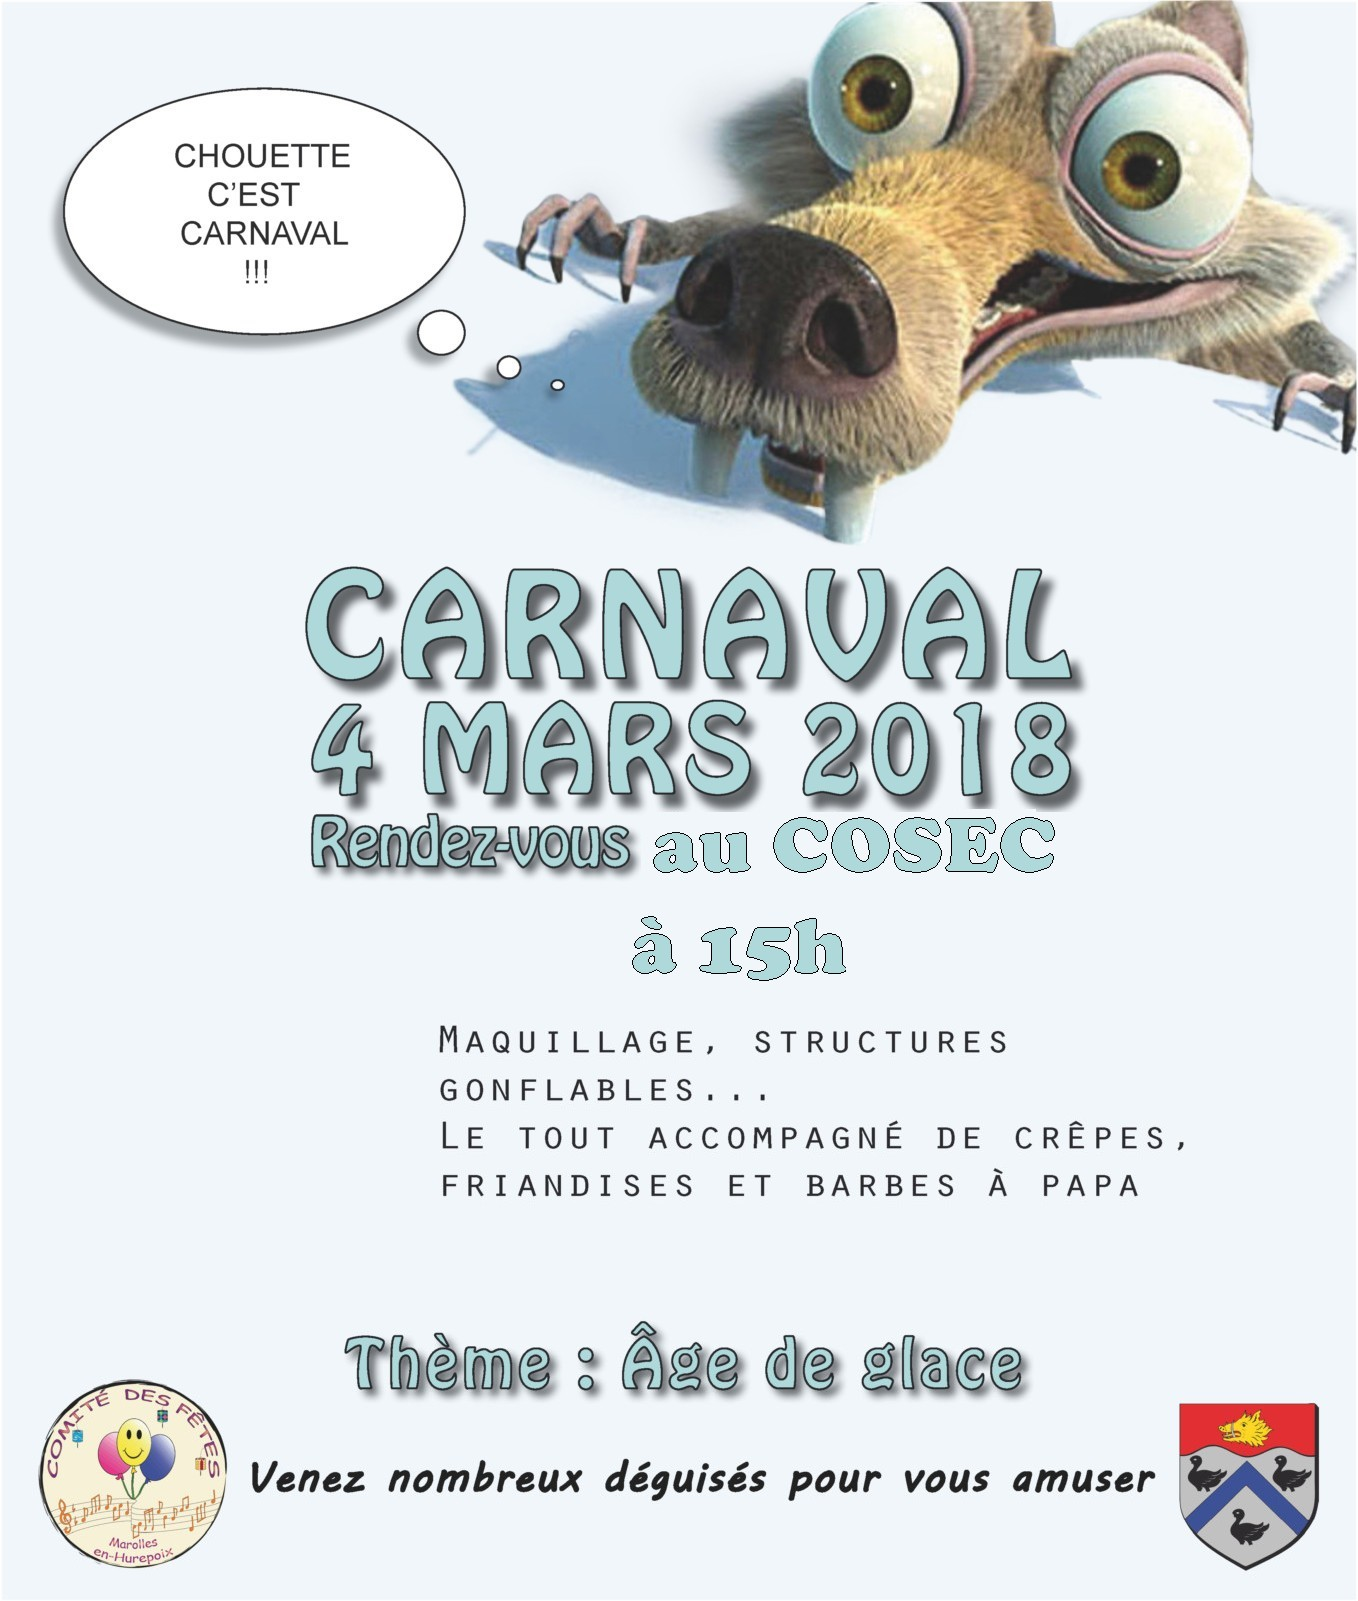 carnaval 2018 site officiel de la mairie de marolles en hurepoix. Black Bedroom Furniture Sets. Home Design Ideas